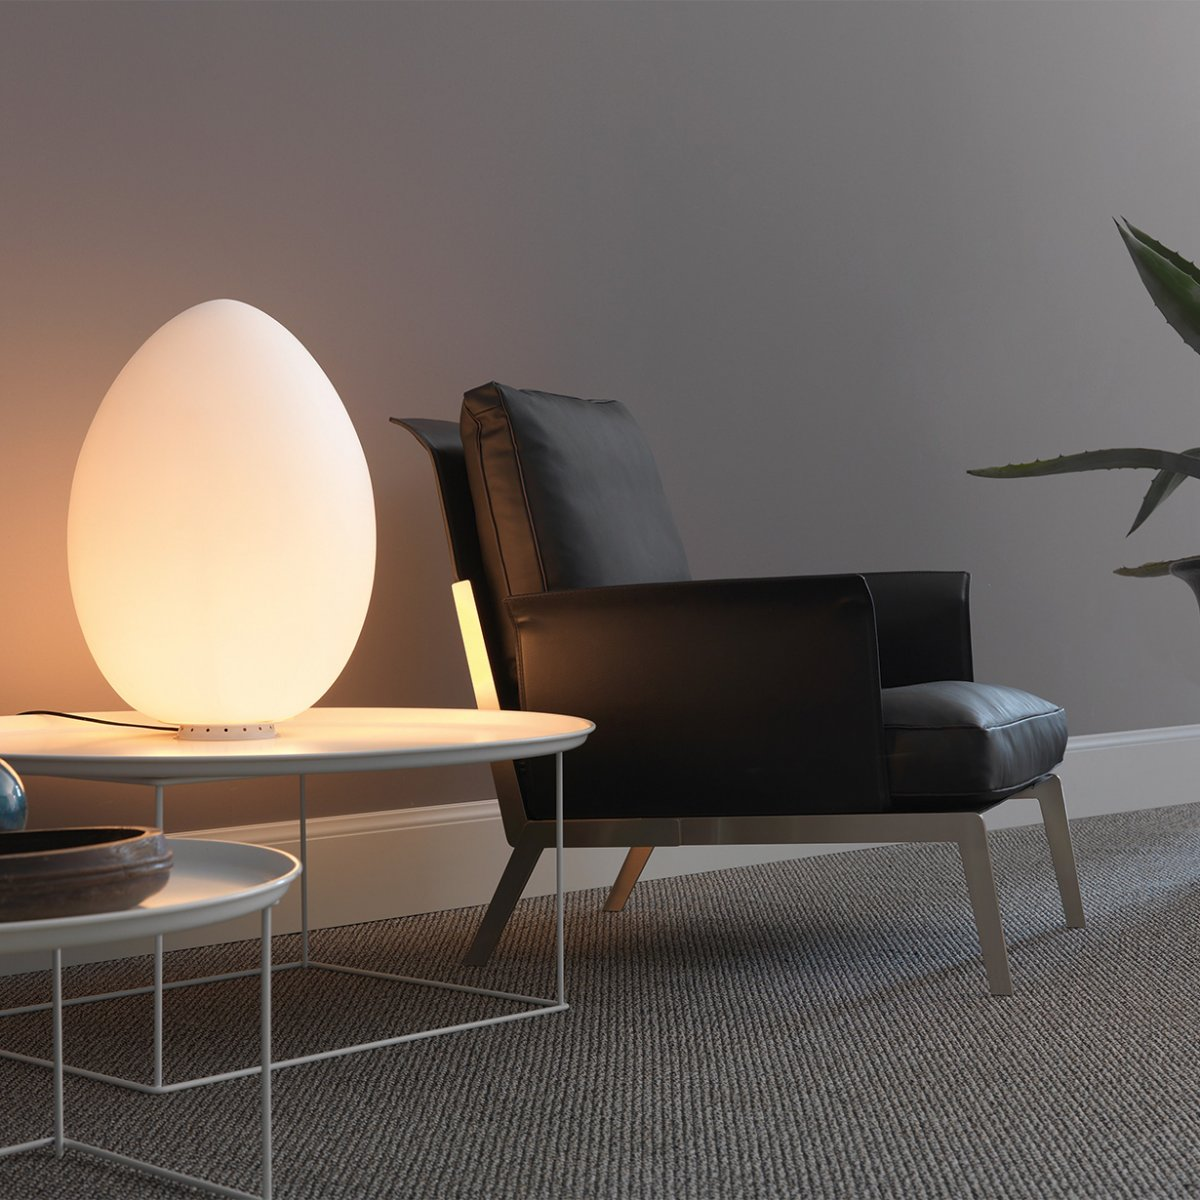 Glowing Egg Lamp Interior Design Ideas